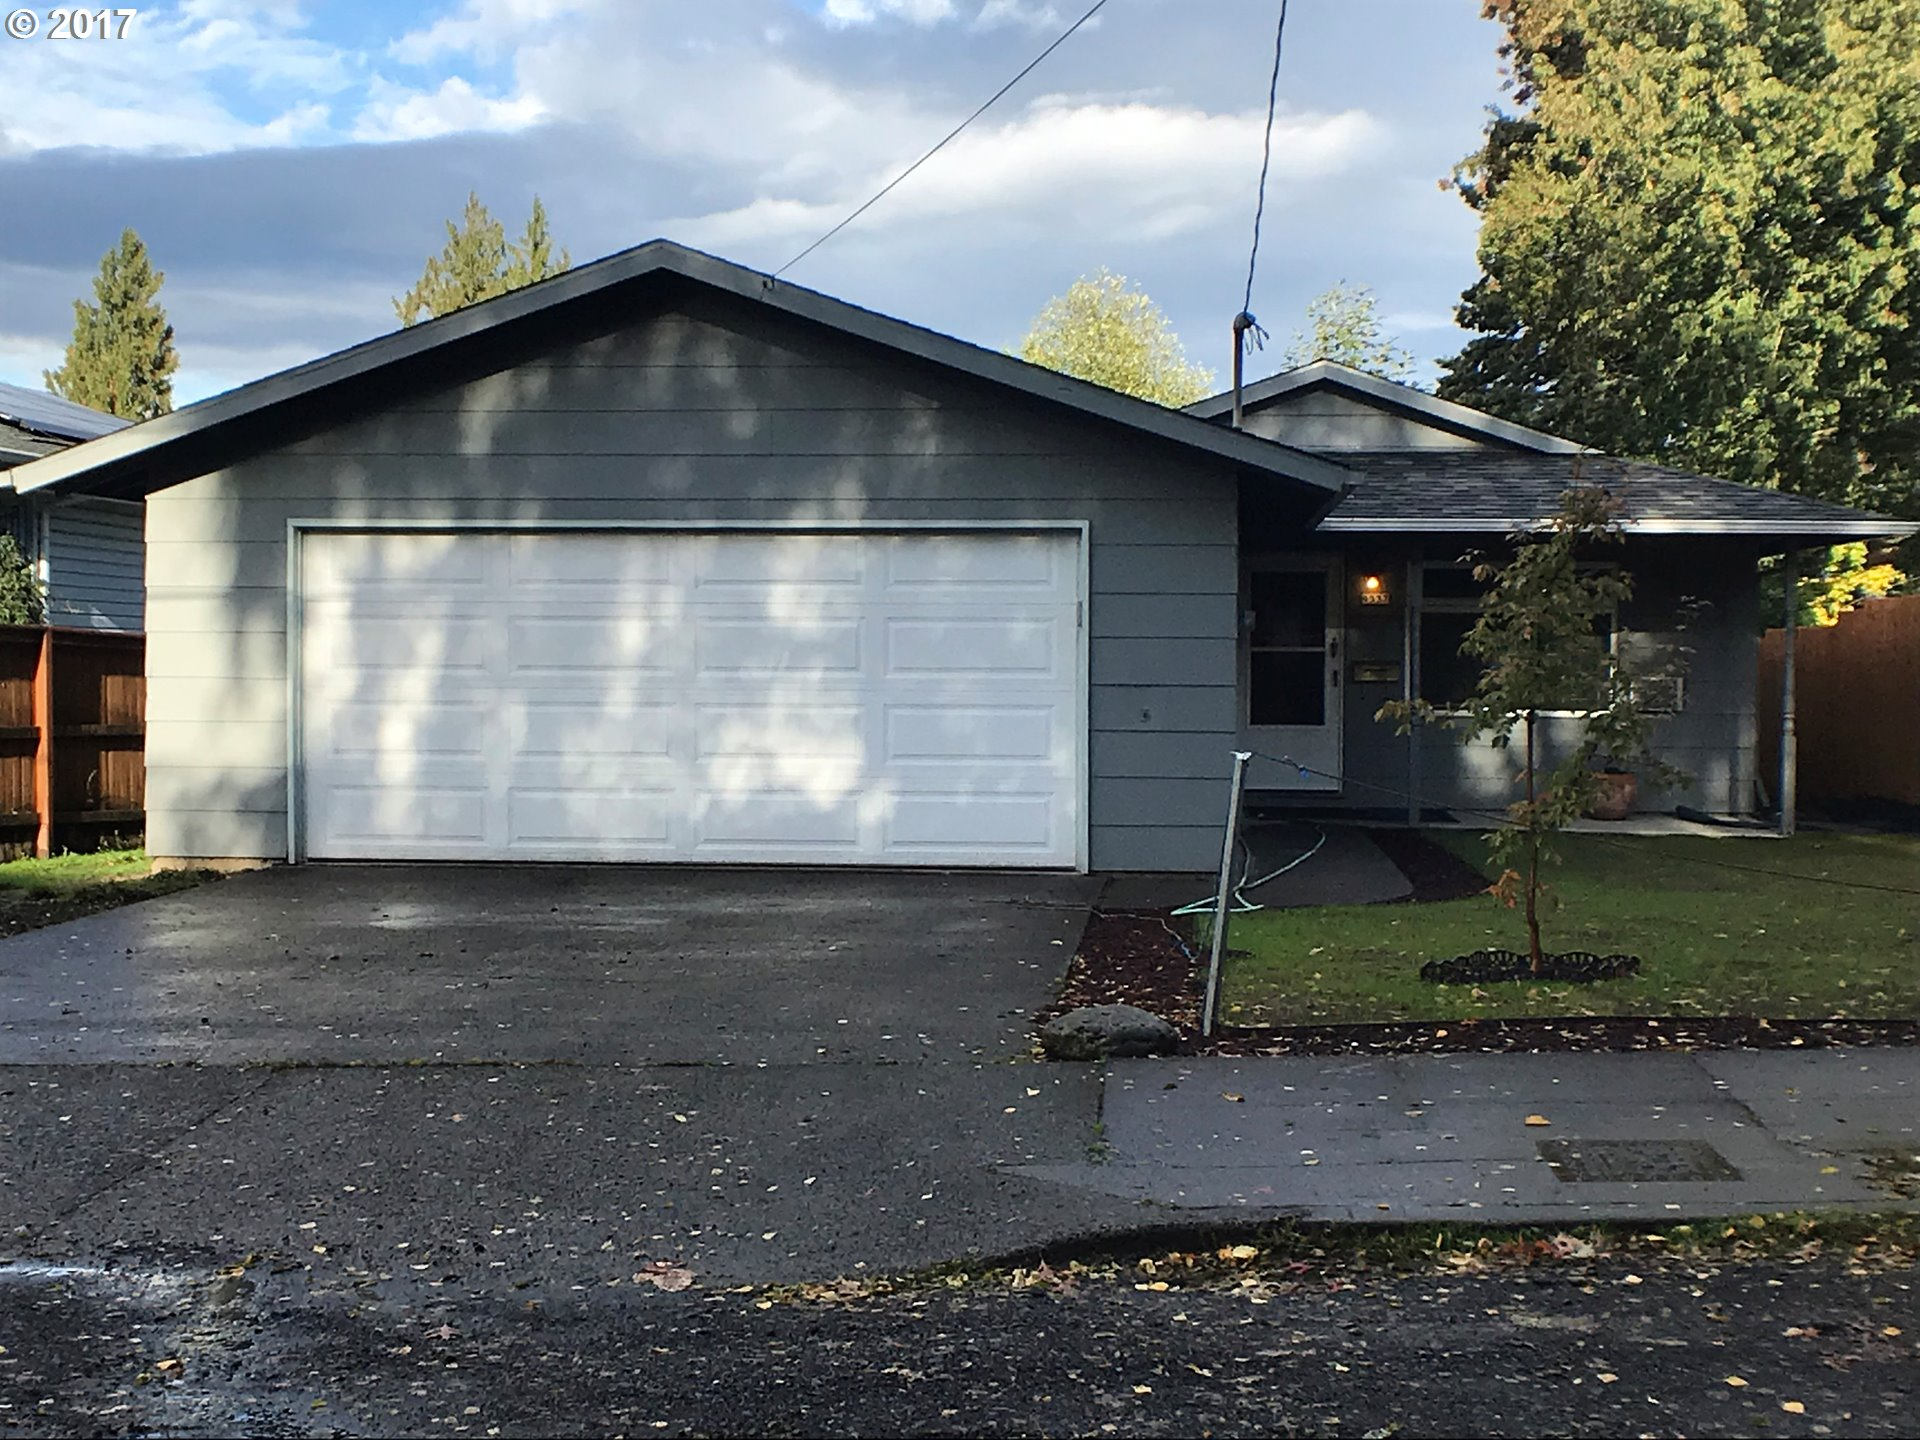 Great ranch style home with attached two car garage and partial basement. Located in a quiet neighborhood, right down the street from Pier Park. The home has new roof, gutters, exterior paint and garage door, as well as a newer high efficiency furnace. Garage 484 sqft.